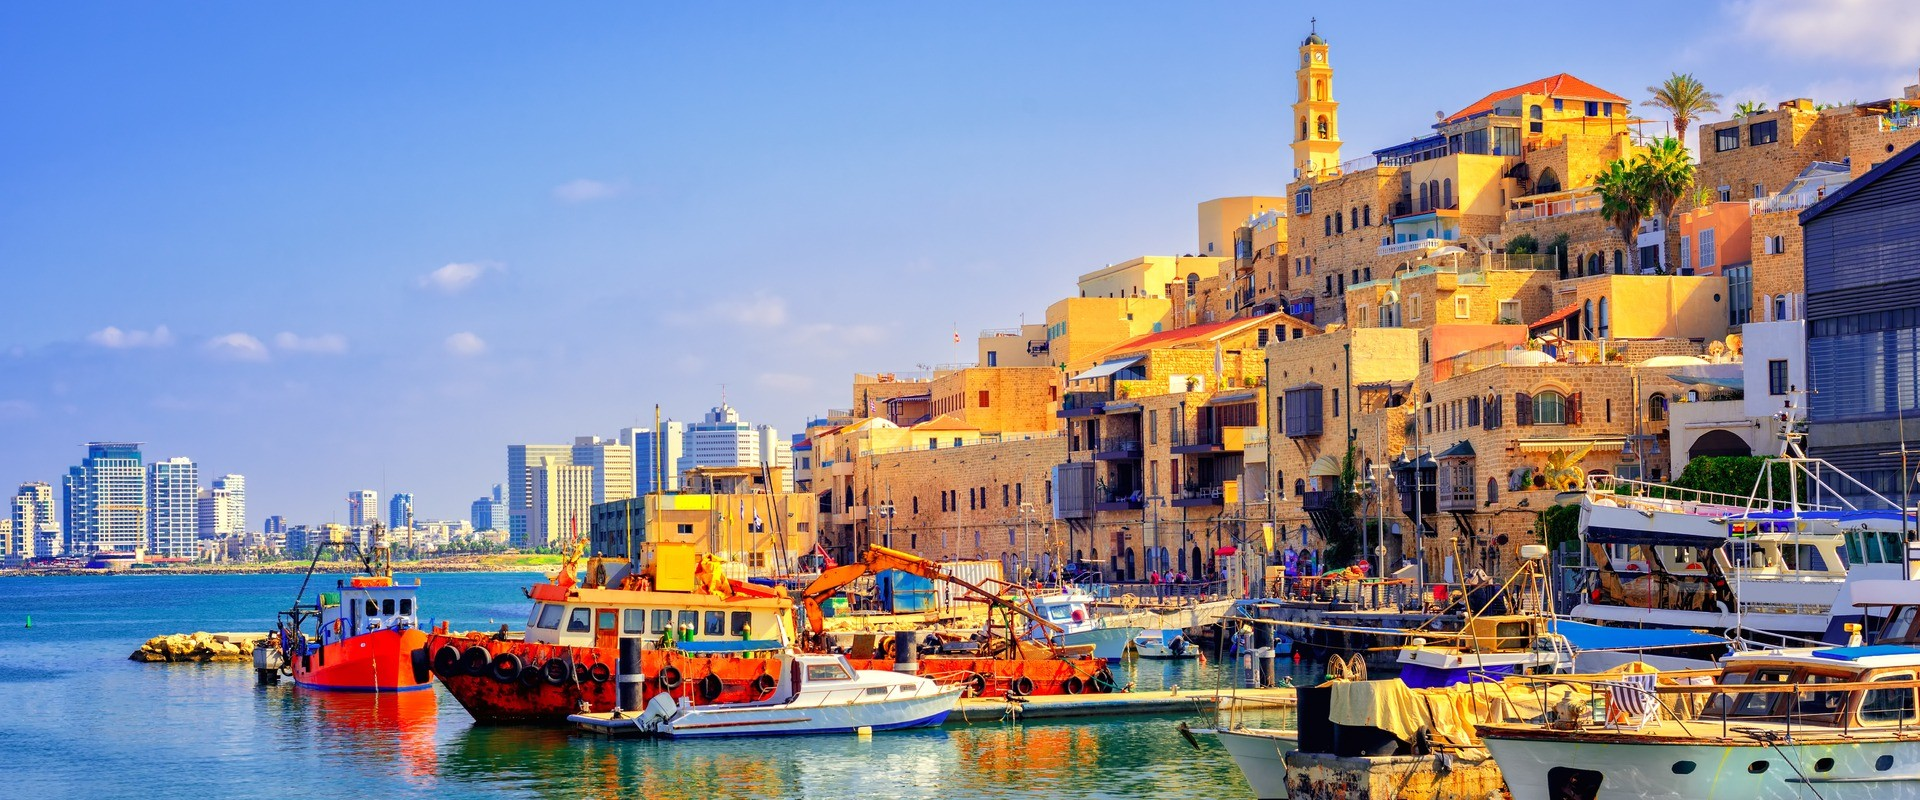 Jaffa Tour | Day tour in Israel | Holy Land VIP tours